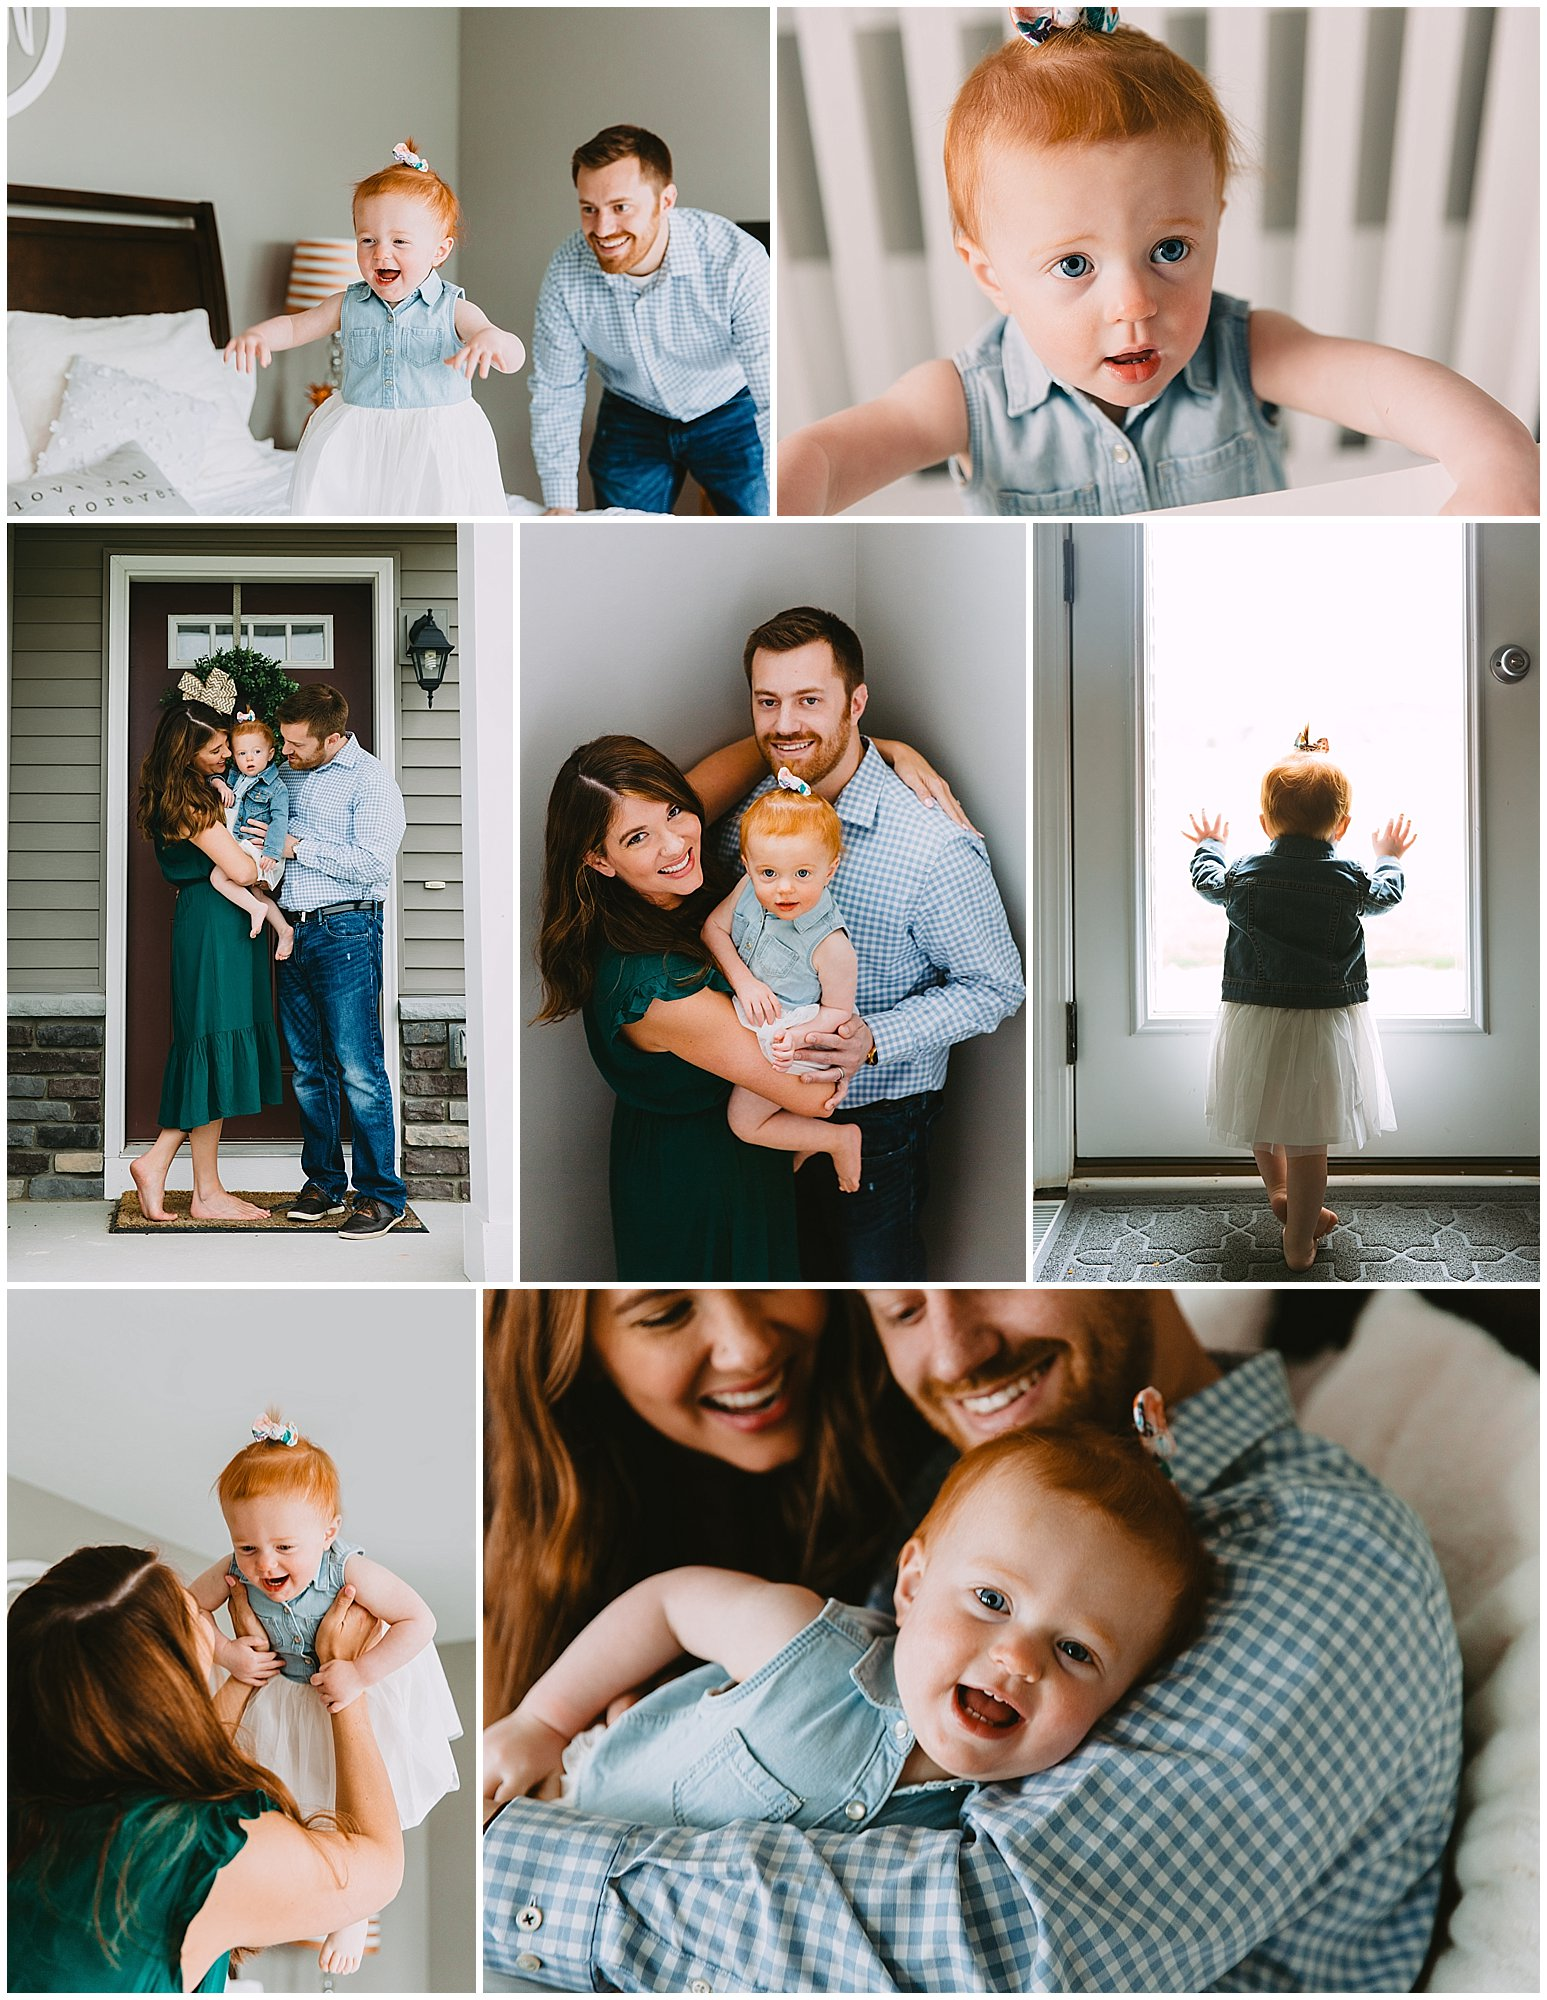 In Home Family Sessions - Celebrate your family where you are most comfortable. Perfect for colder weather and lifestyle newborn sessions. Up to 1 hour session w/edited image files- $350